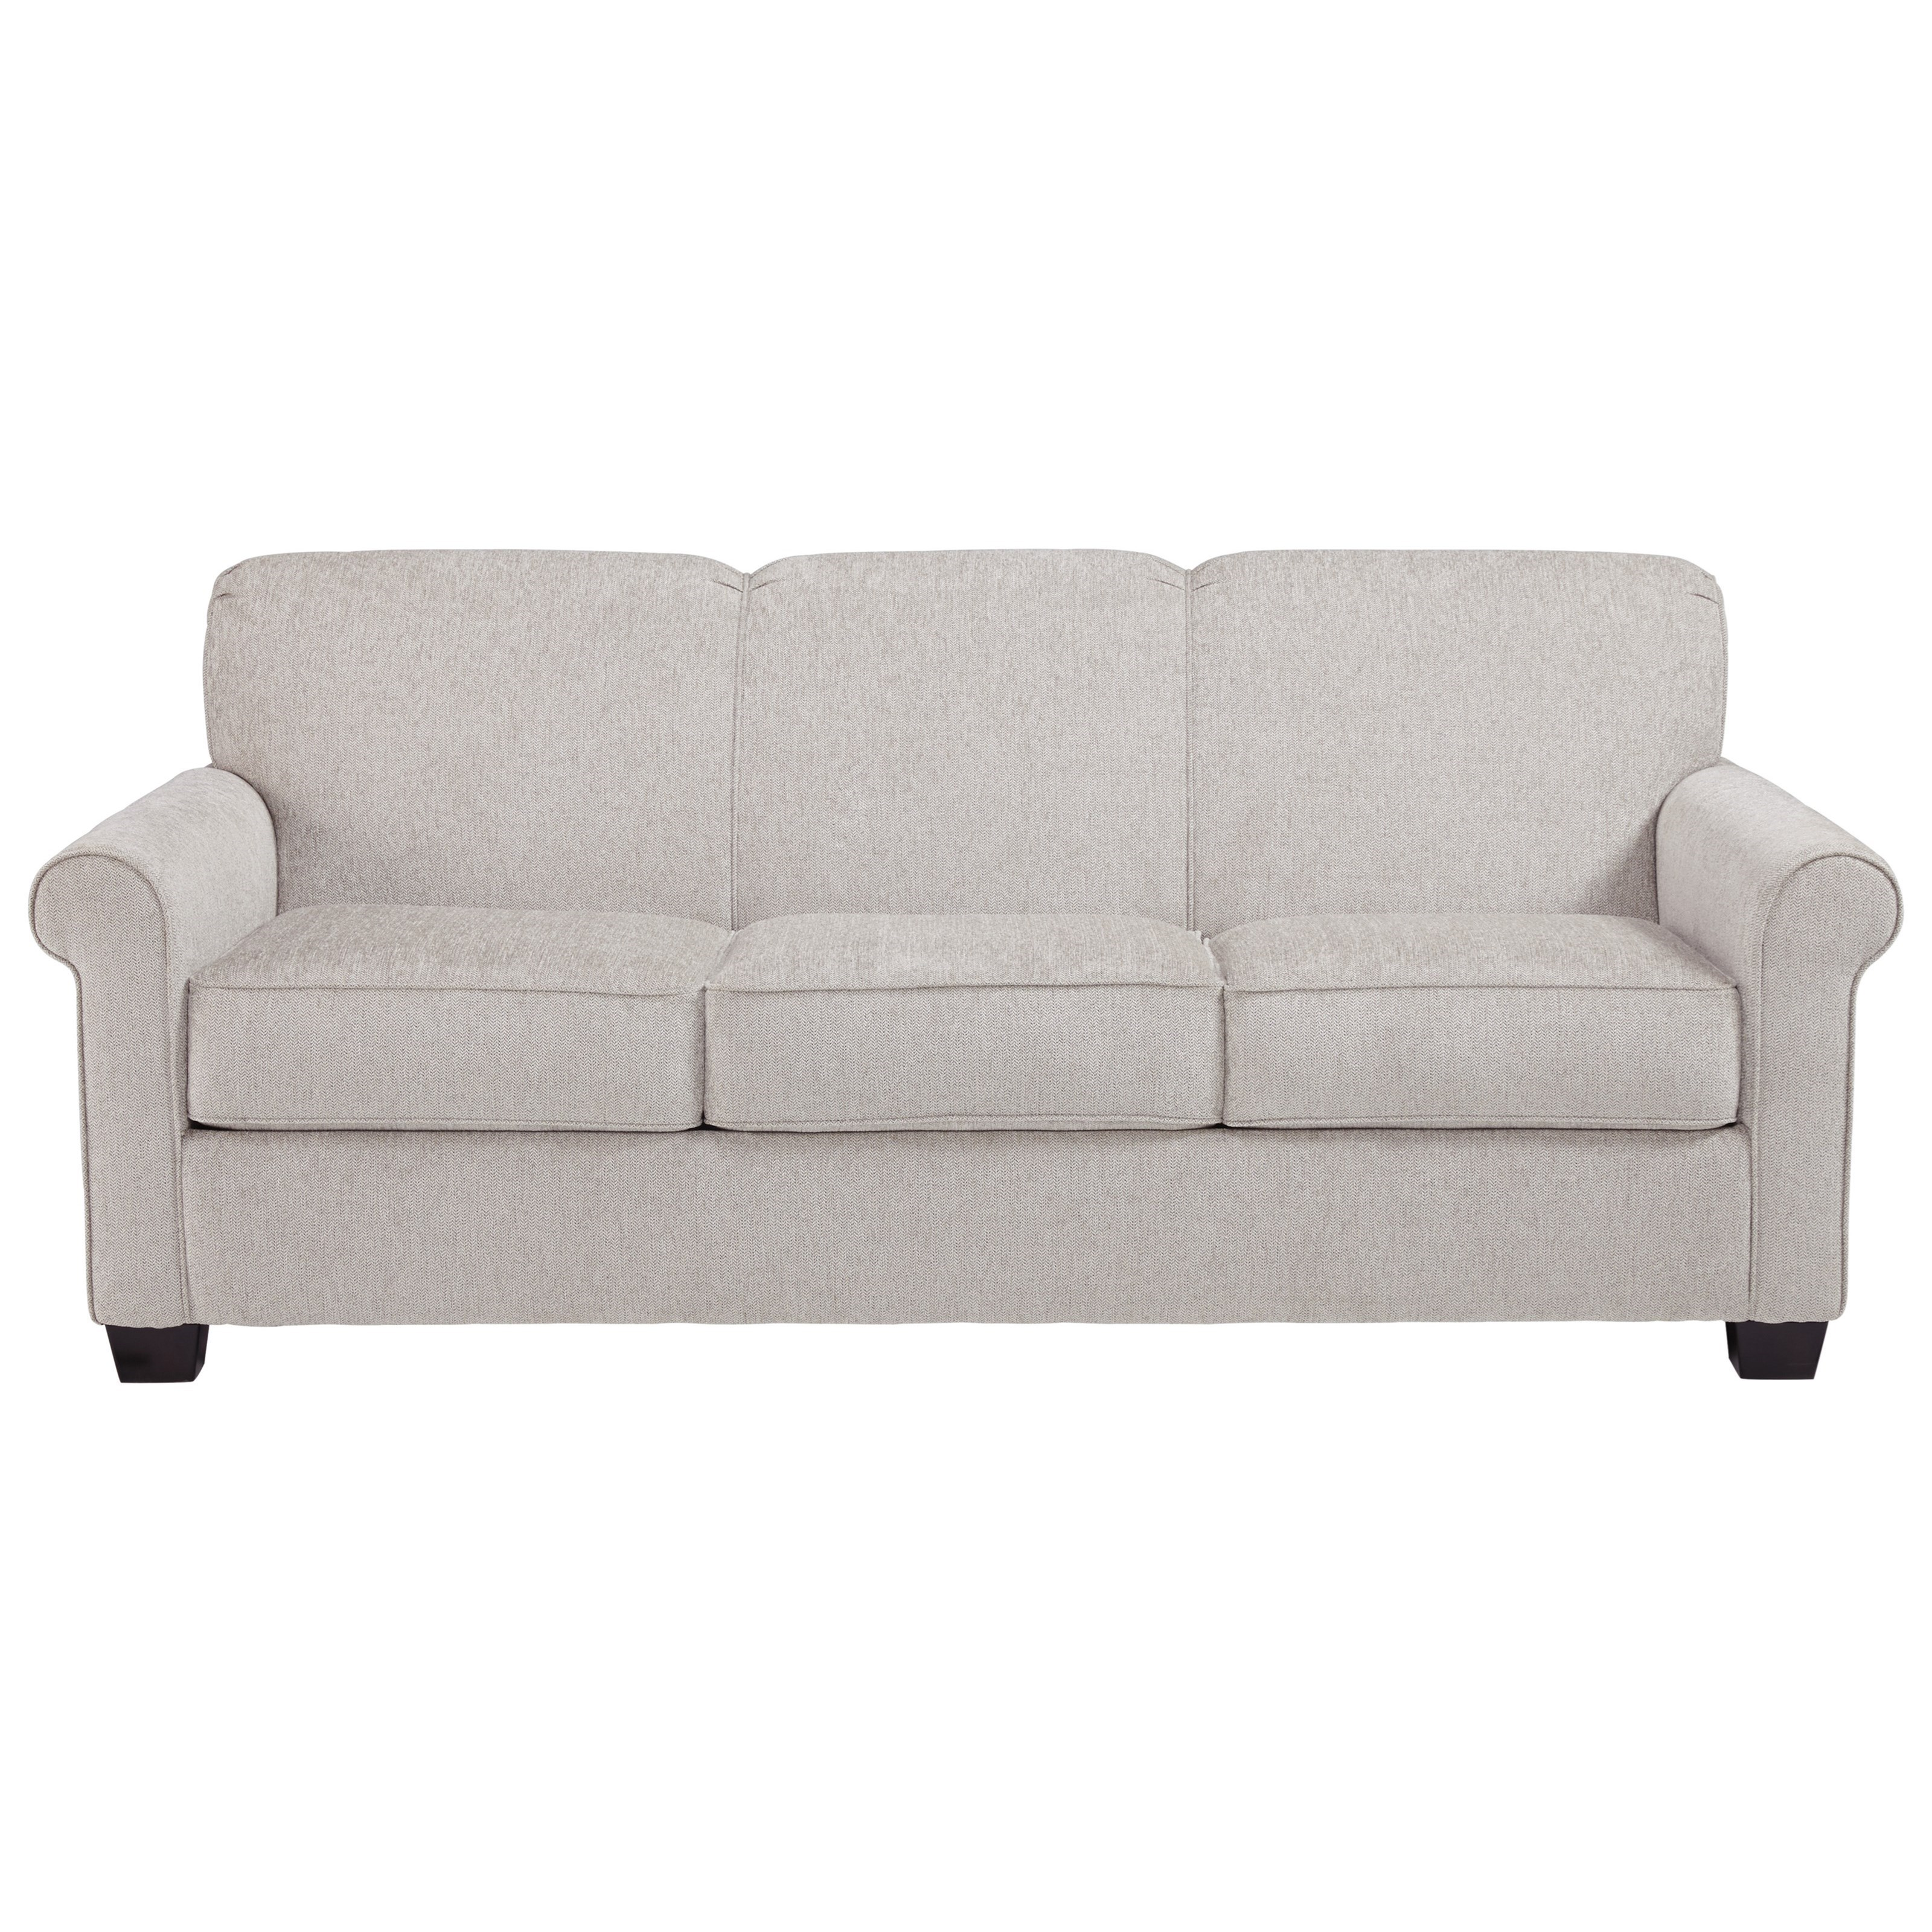 Signature Design by Ashley Cansler Queen Sofa Sleeper - Item Number: 7380739